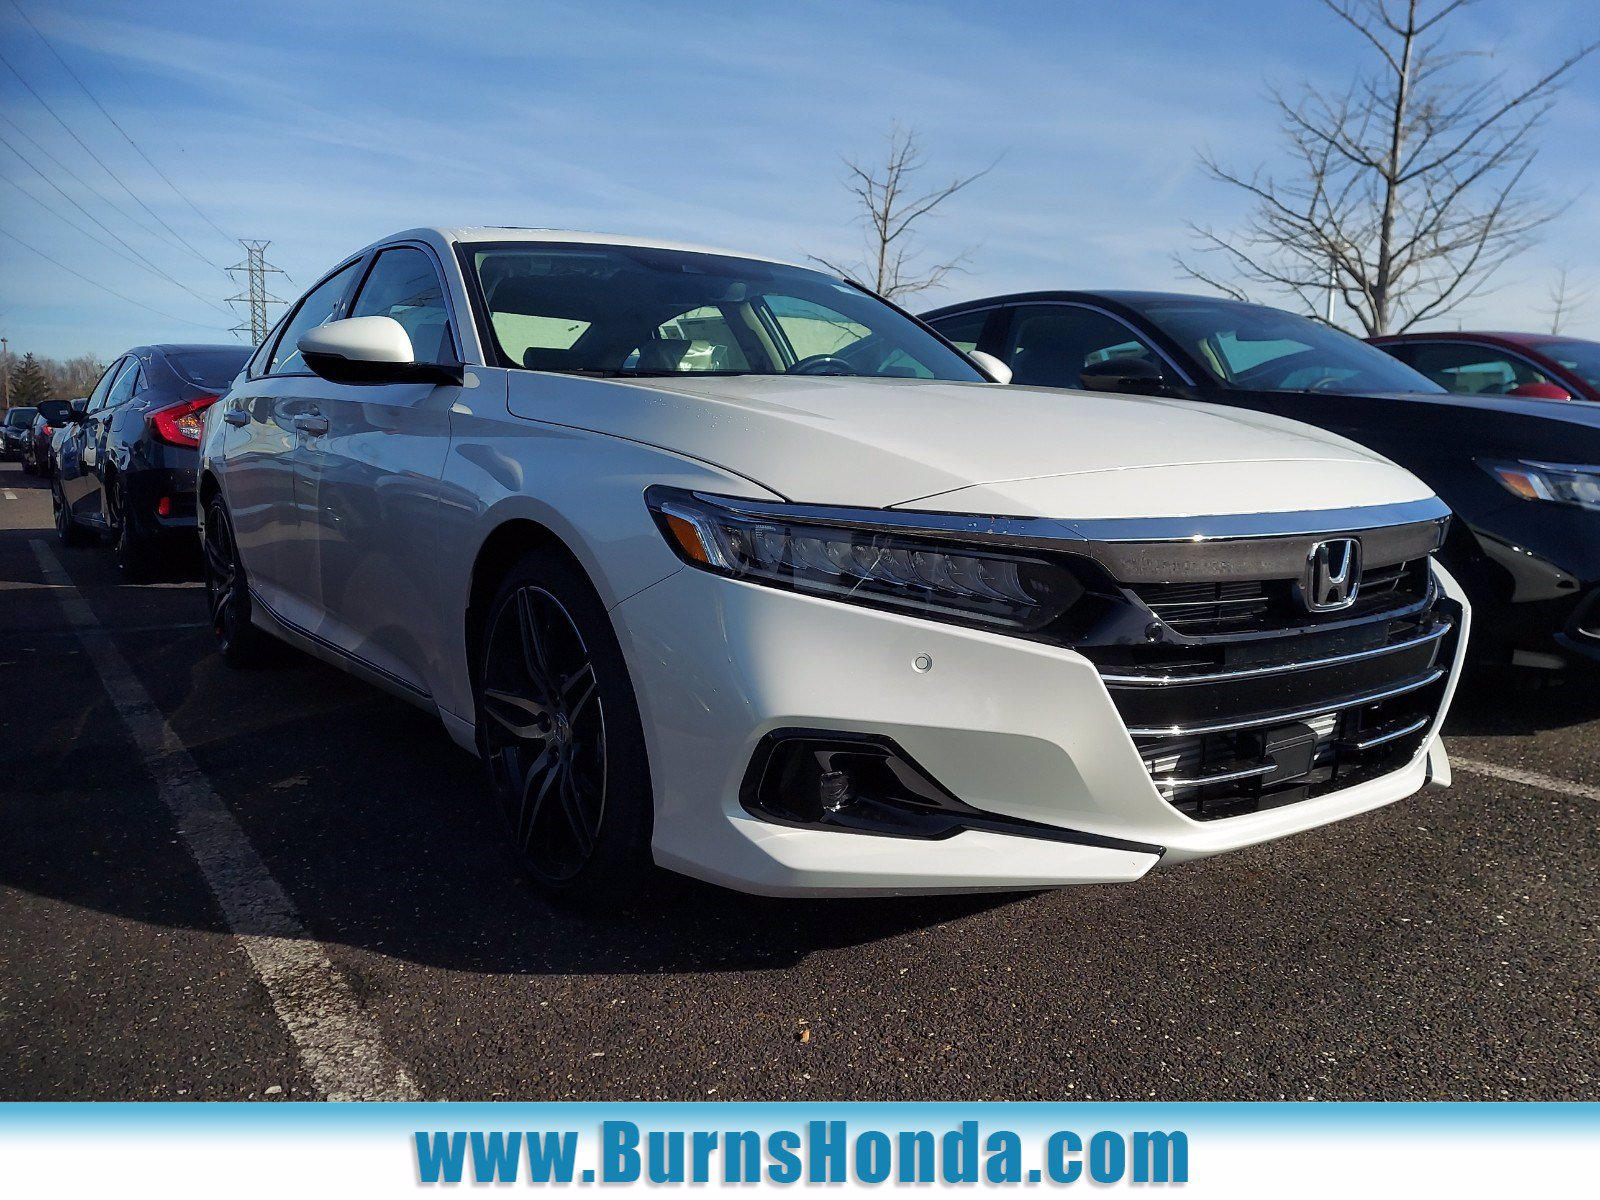 New 2021 Honda Accord For Sale At Burns Honda Vin 1hgcv2f92ma006853